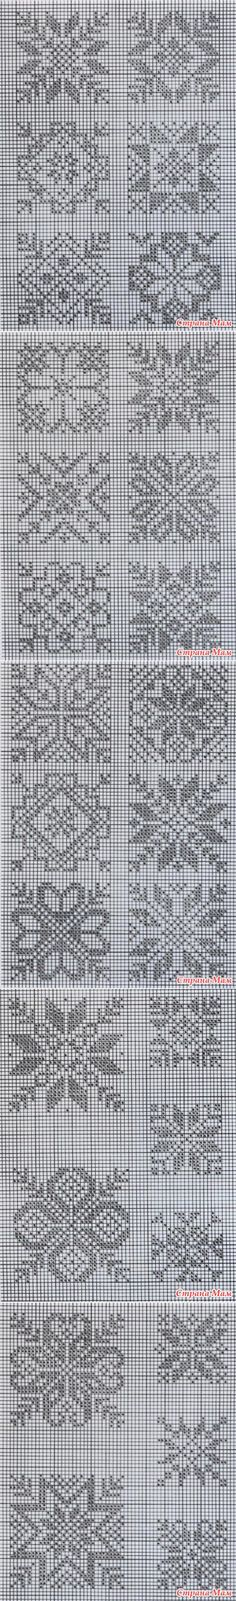 Norwegian patterns - WORLD IN MY HANDS! Filet Crochet, Crochet Cross, Crochet Chart, Knitting Charts, Knitting Stitches, Knitting Designs, Knitting Patterns, Hardanger Embroidery, Cross Stitch Embroidery